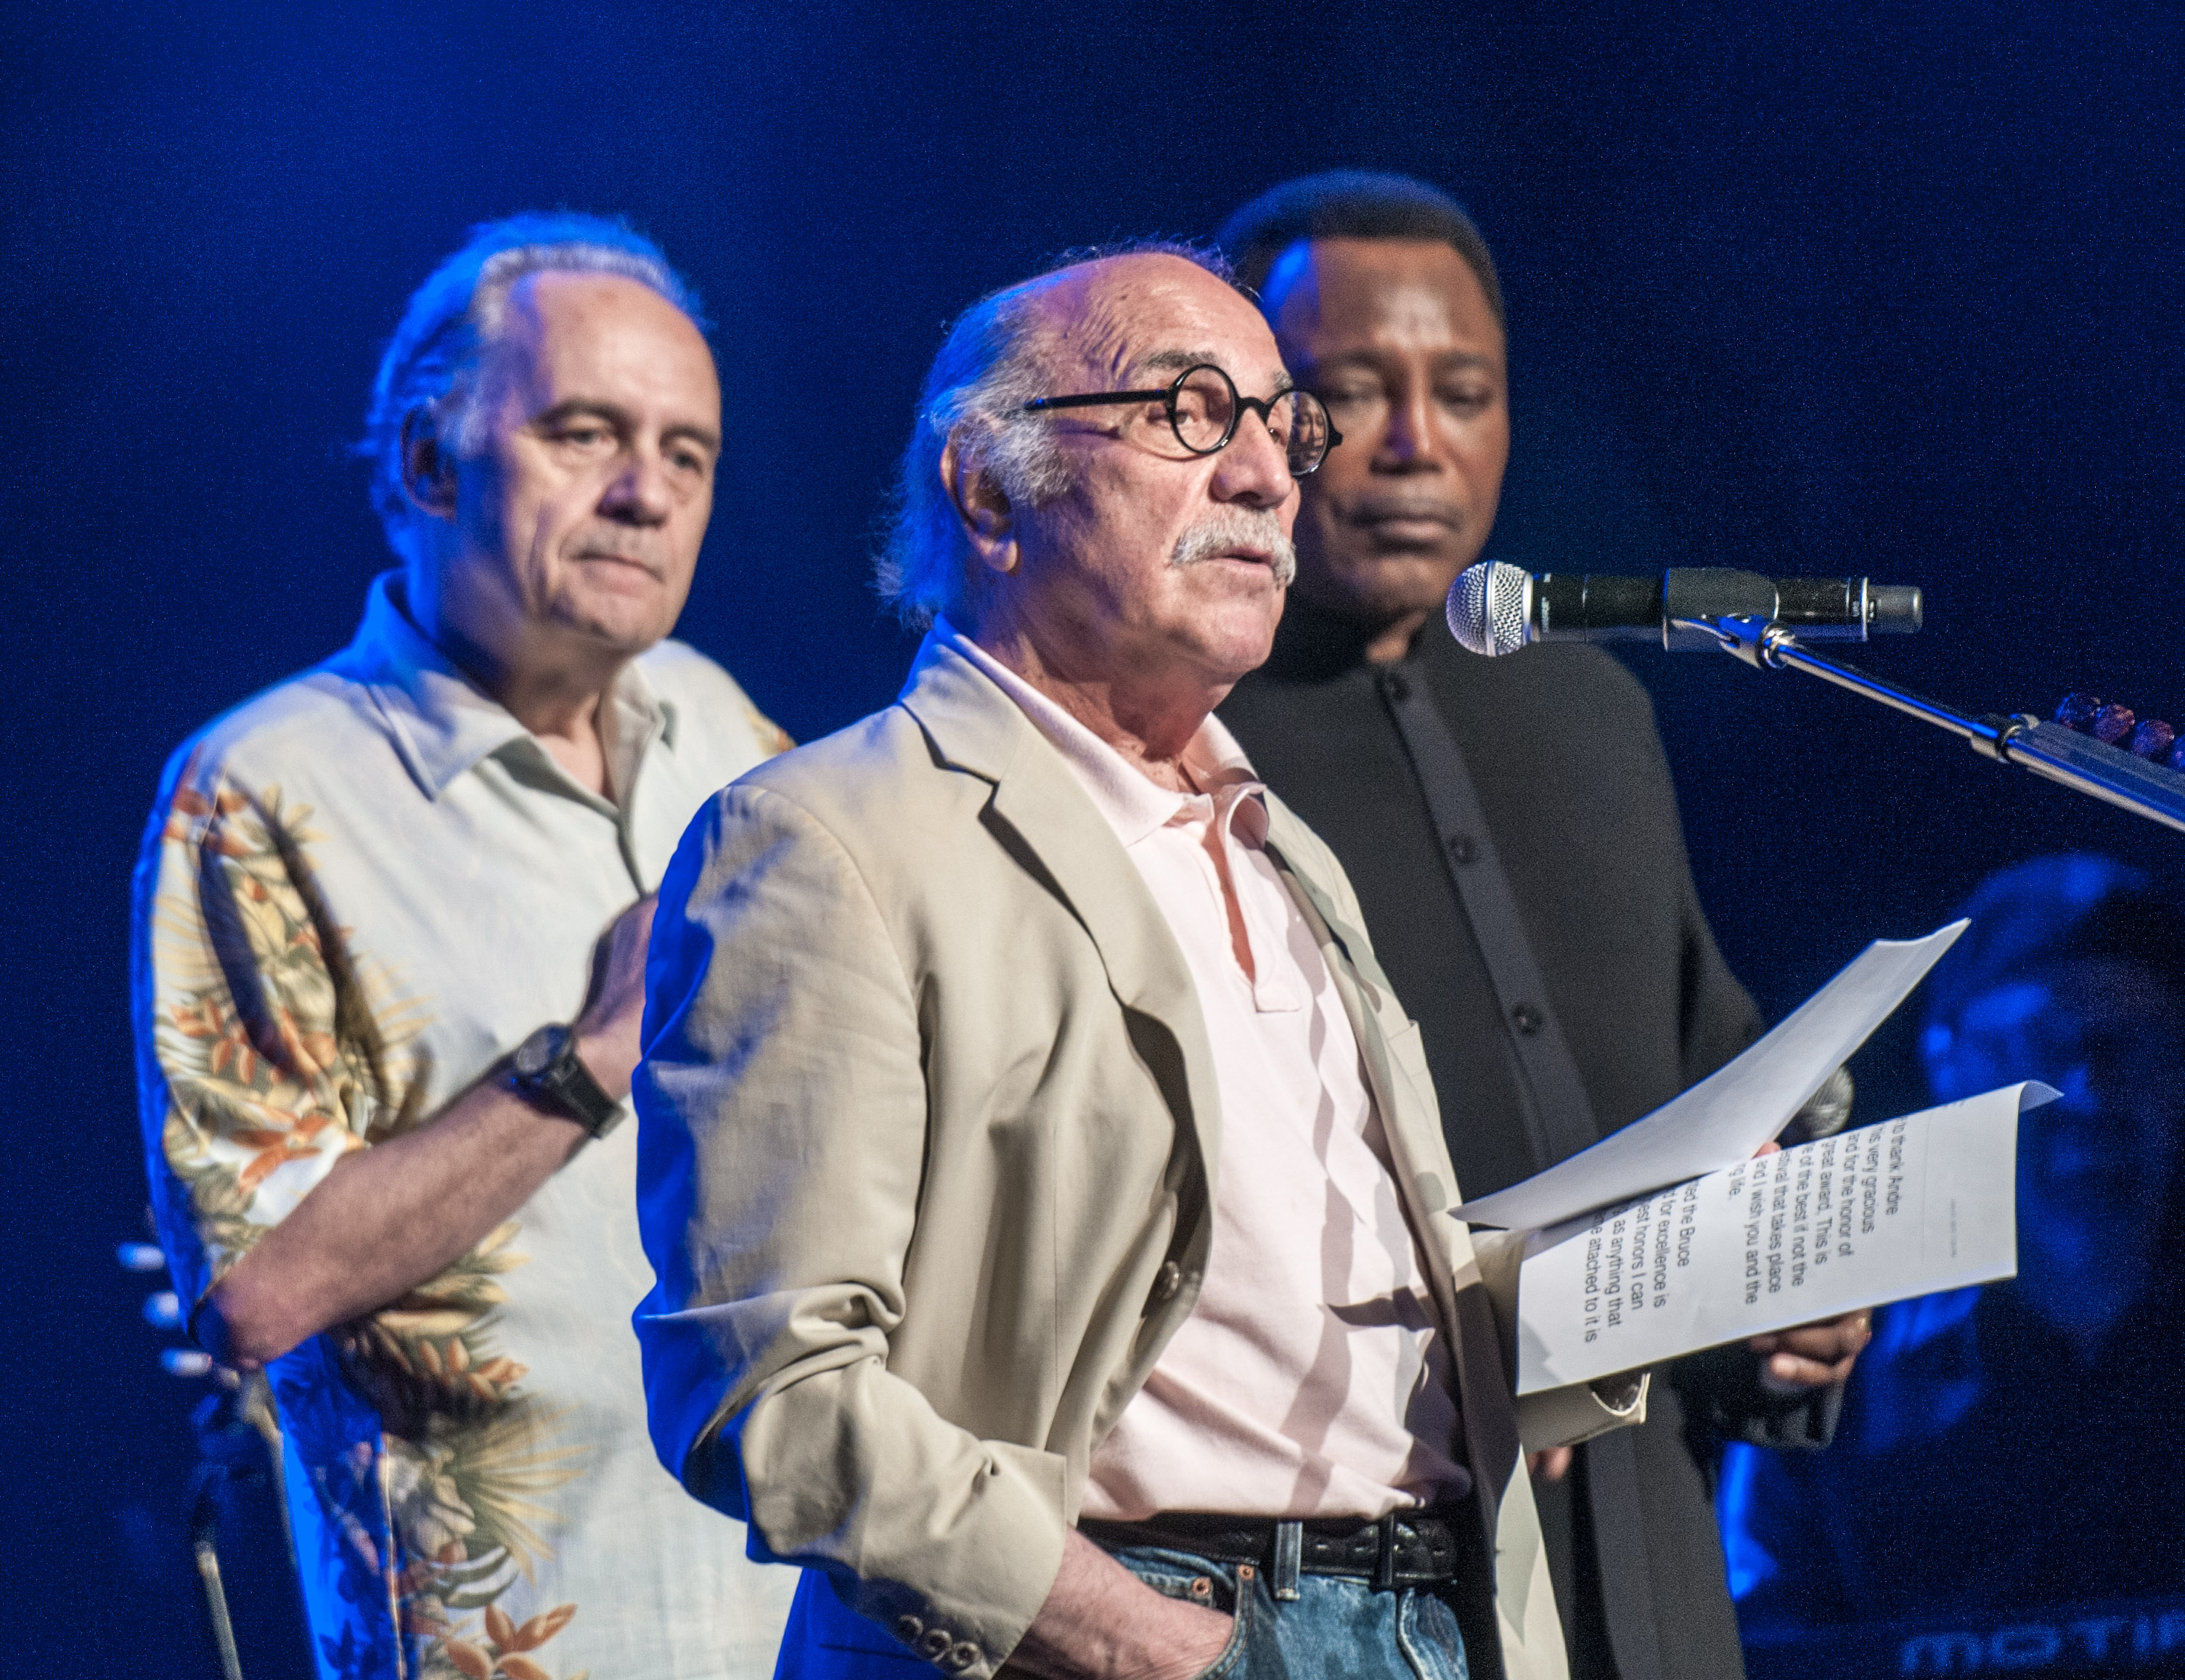 Andre menard, tommy lipuma and george benson at the montreal international jazz festival 2013